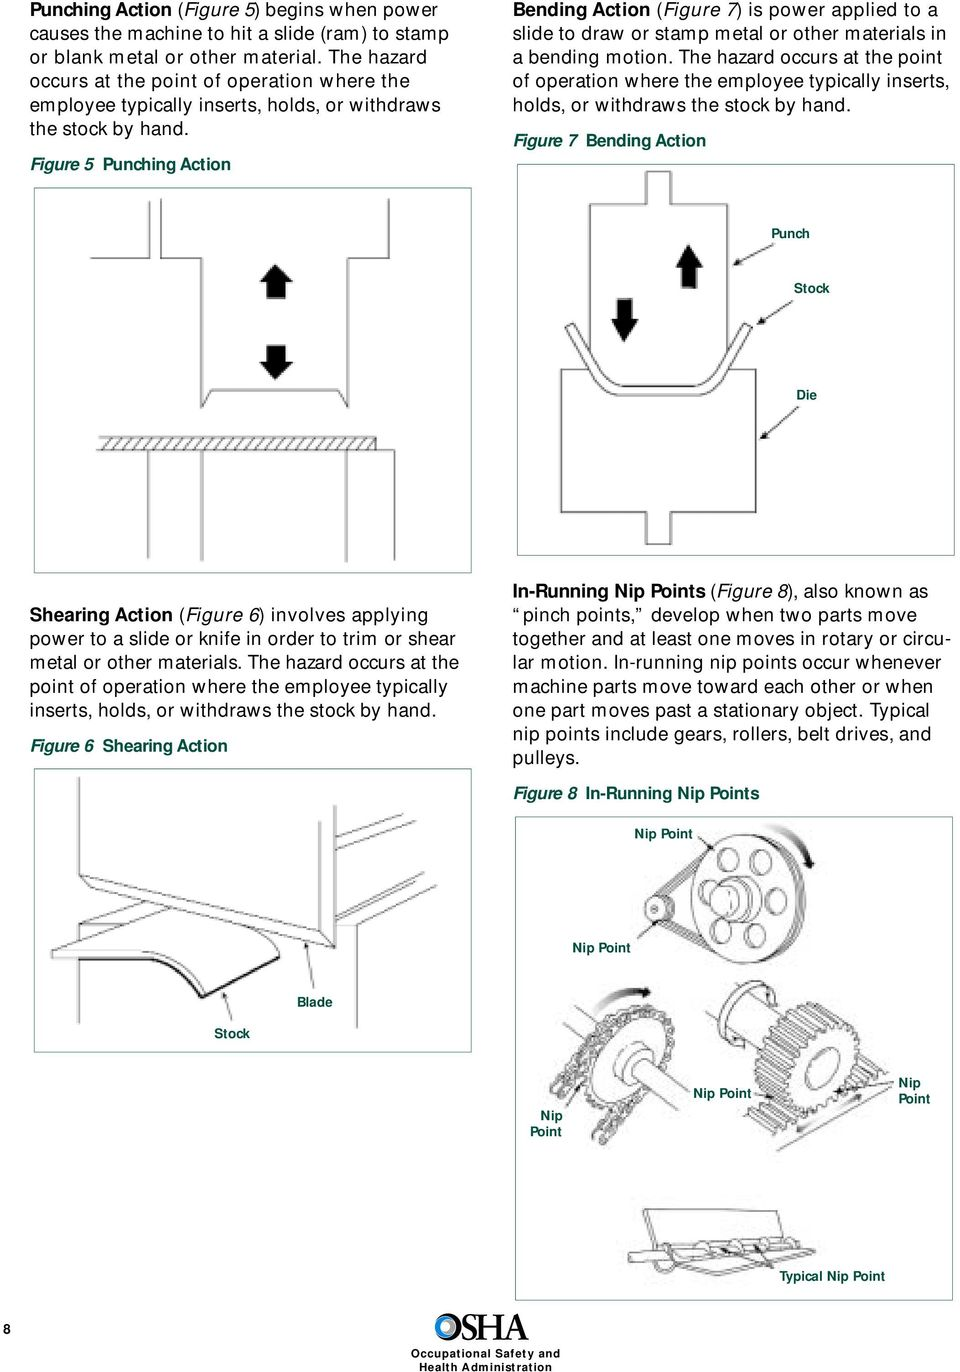 Figure 5 Punching Action Bending Action (Figure 7) is power applied to a slide to draw or stamp metal or other materials in a bending motion.